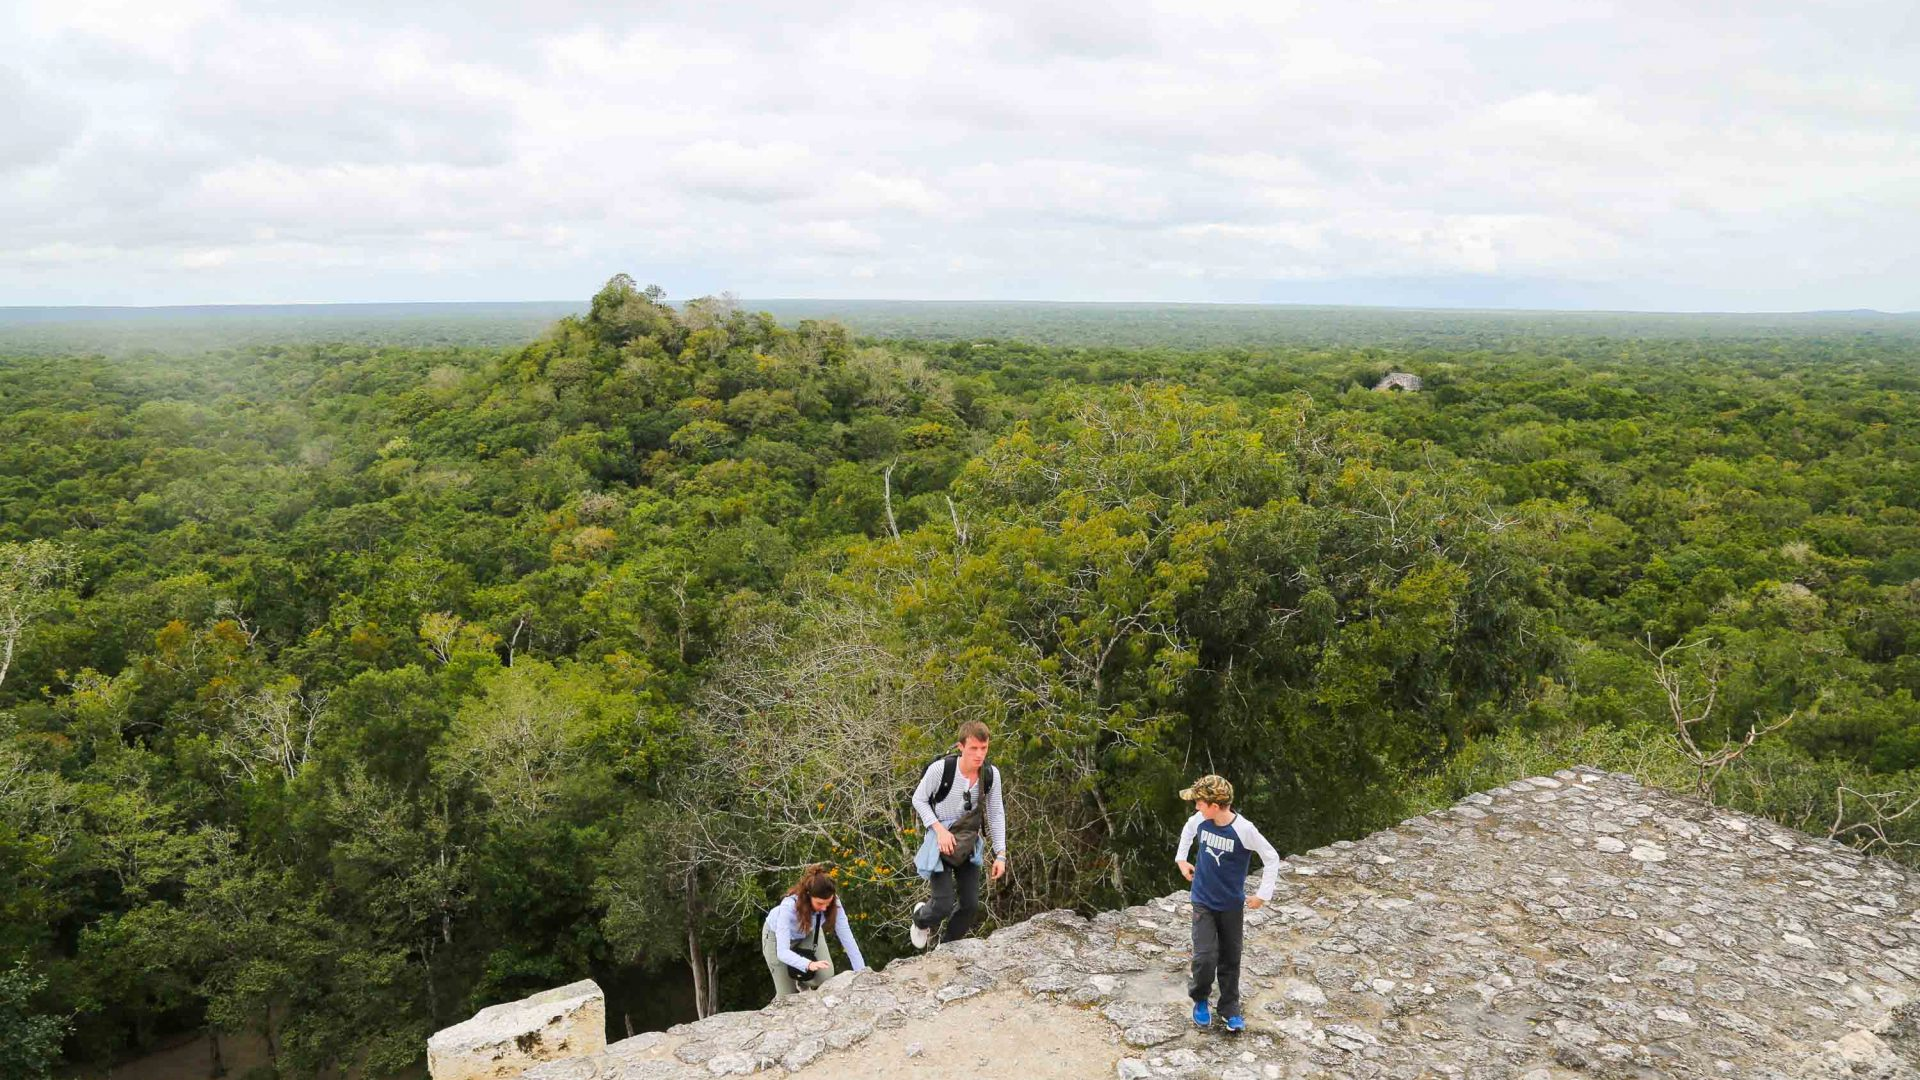 Ruins of Calakmul in the Yucatán Peninsula, Mexico.